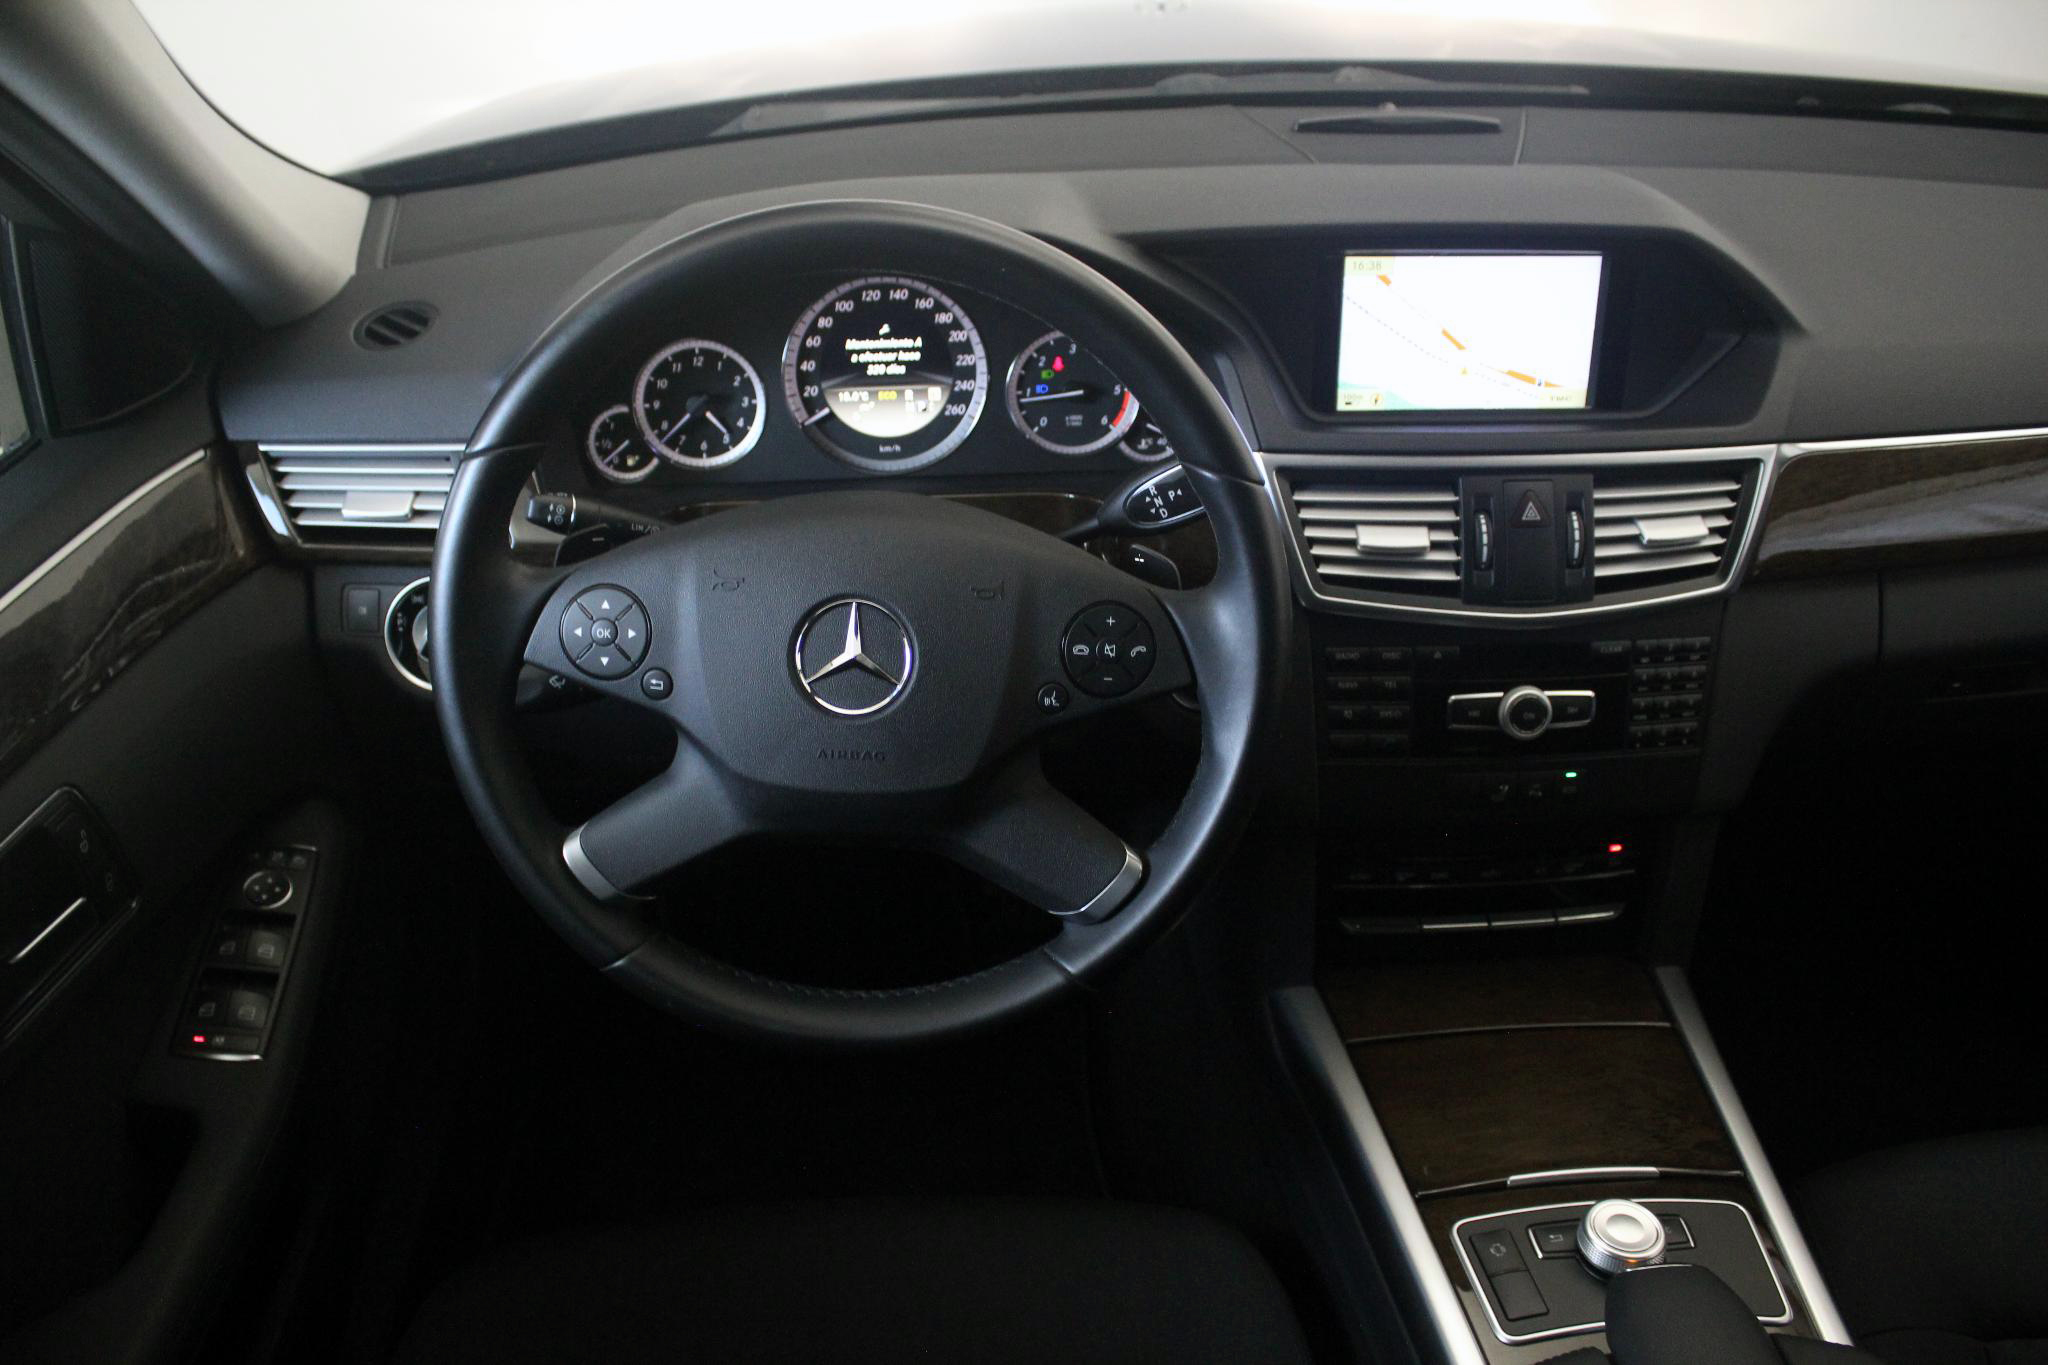 Mercedes-Benz Clase E CLASE E 250 CDI BLUE EFFICIENCY AUTO imagen 26